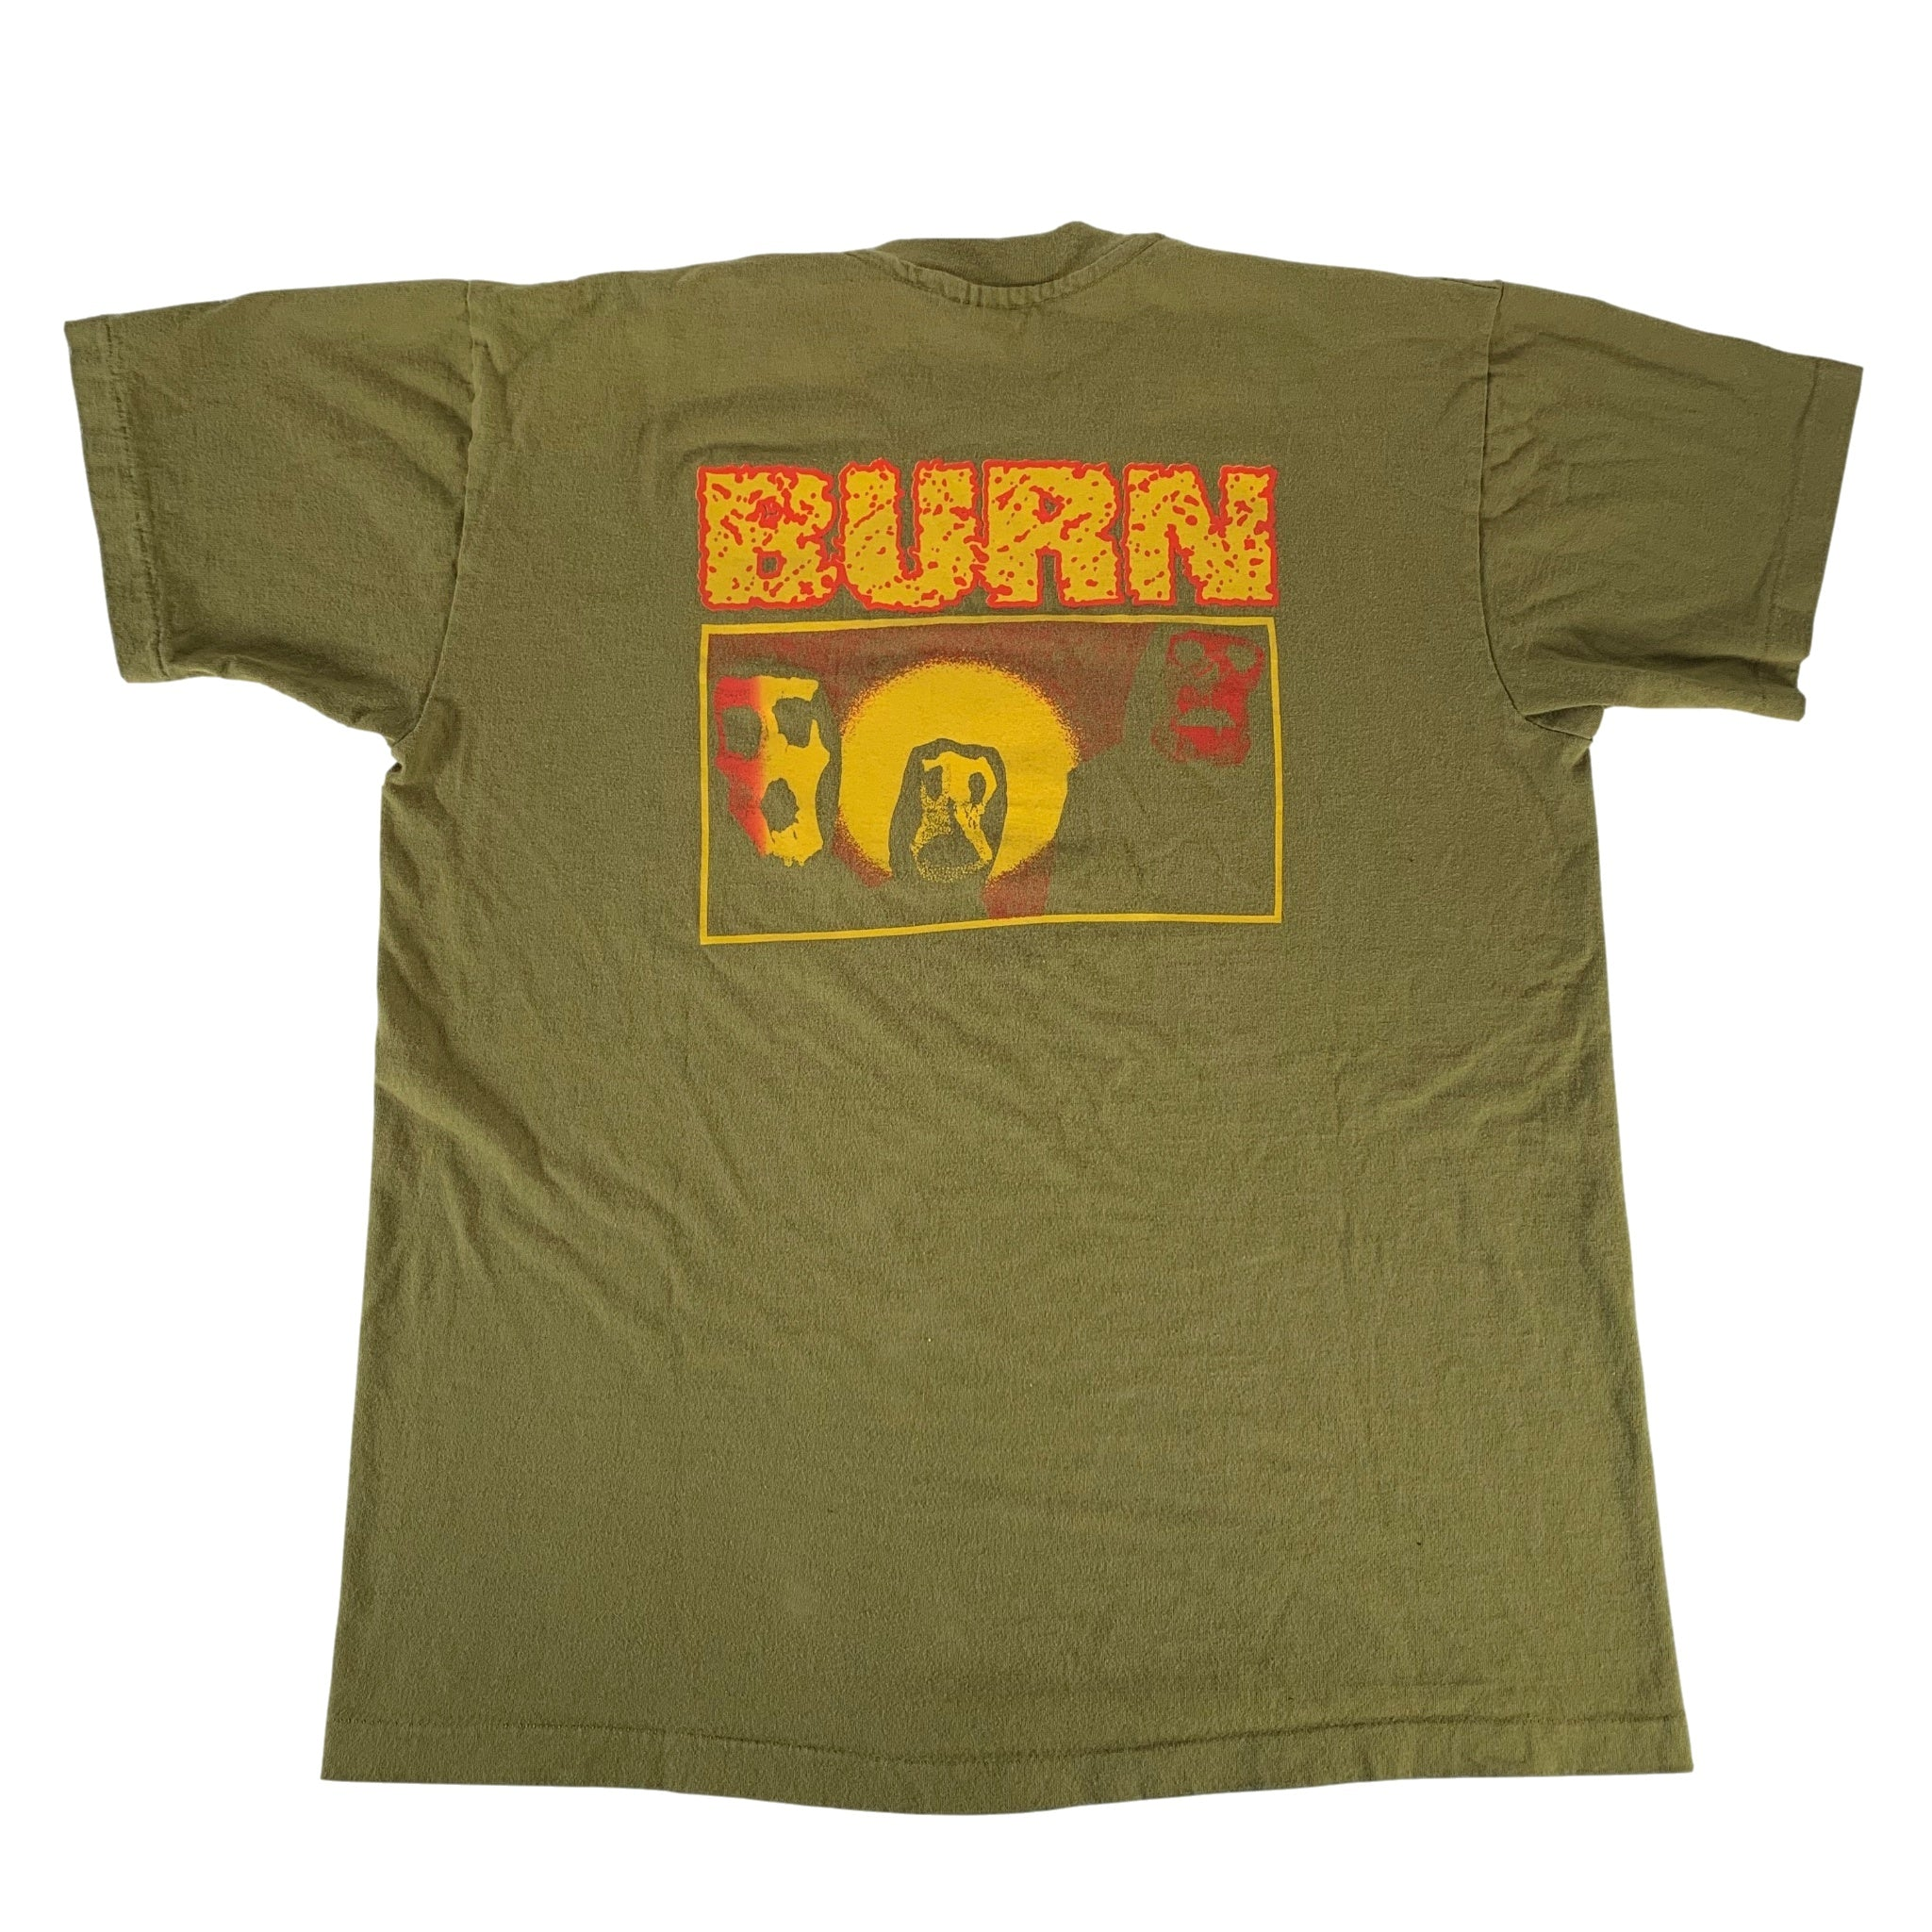 "Vintage Burn ""Shall Be Judged"" T-Shirt"